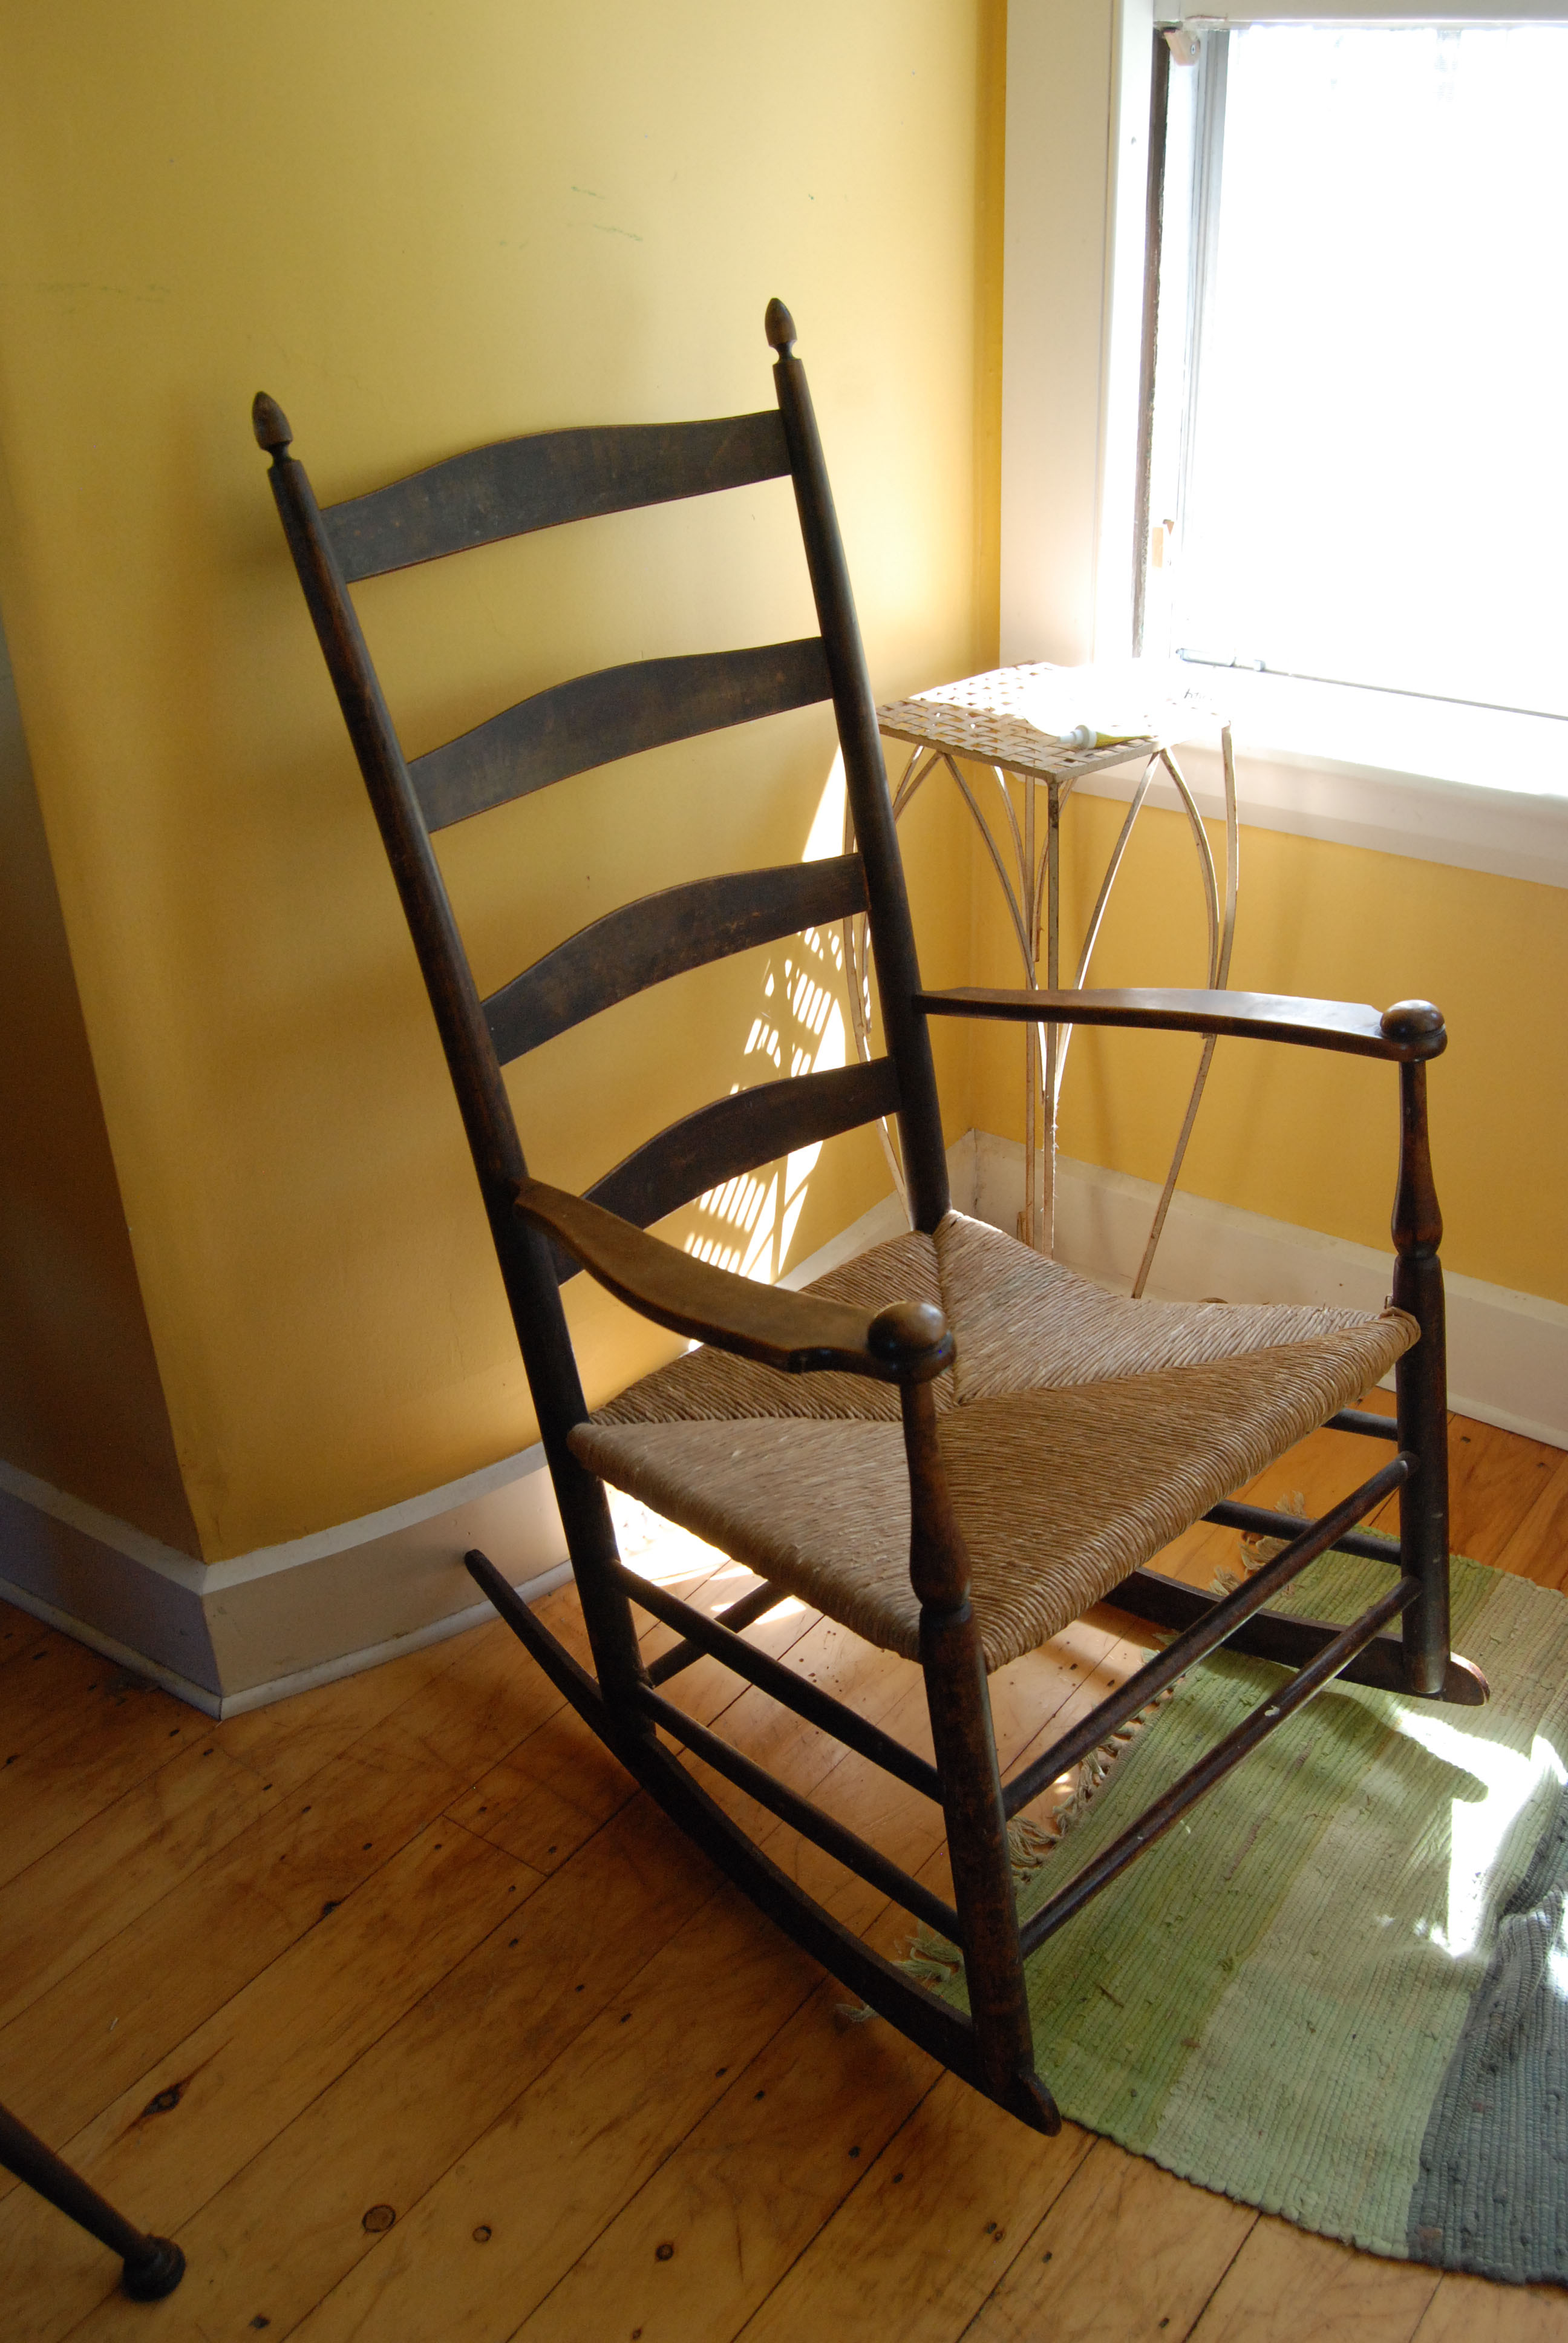 How To Make A Shaker Chair